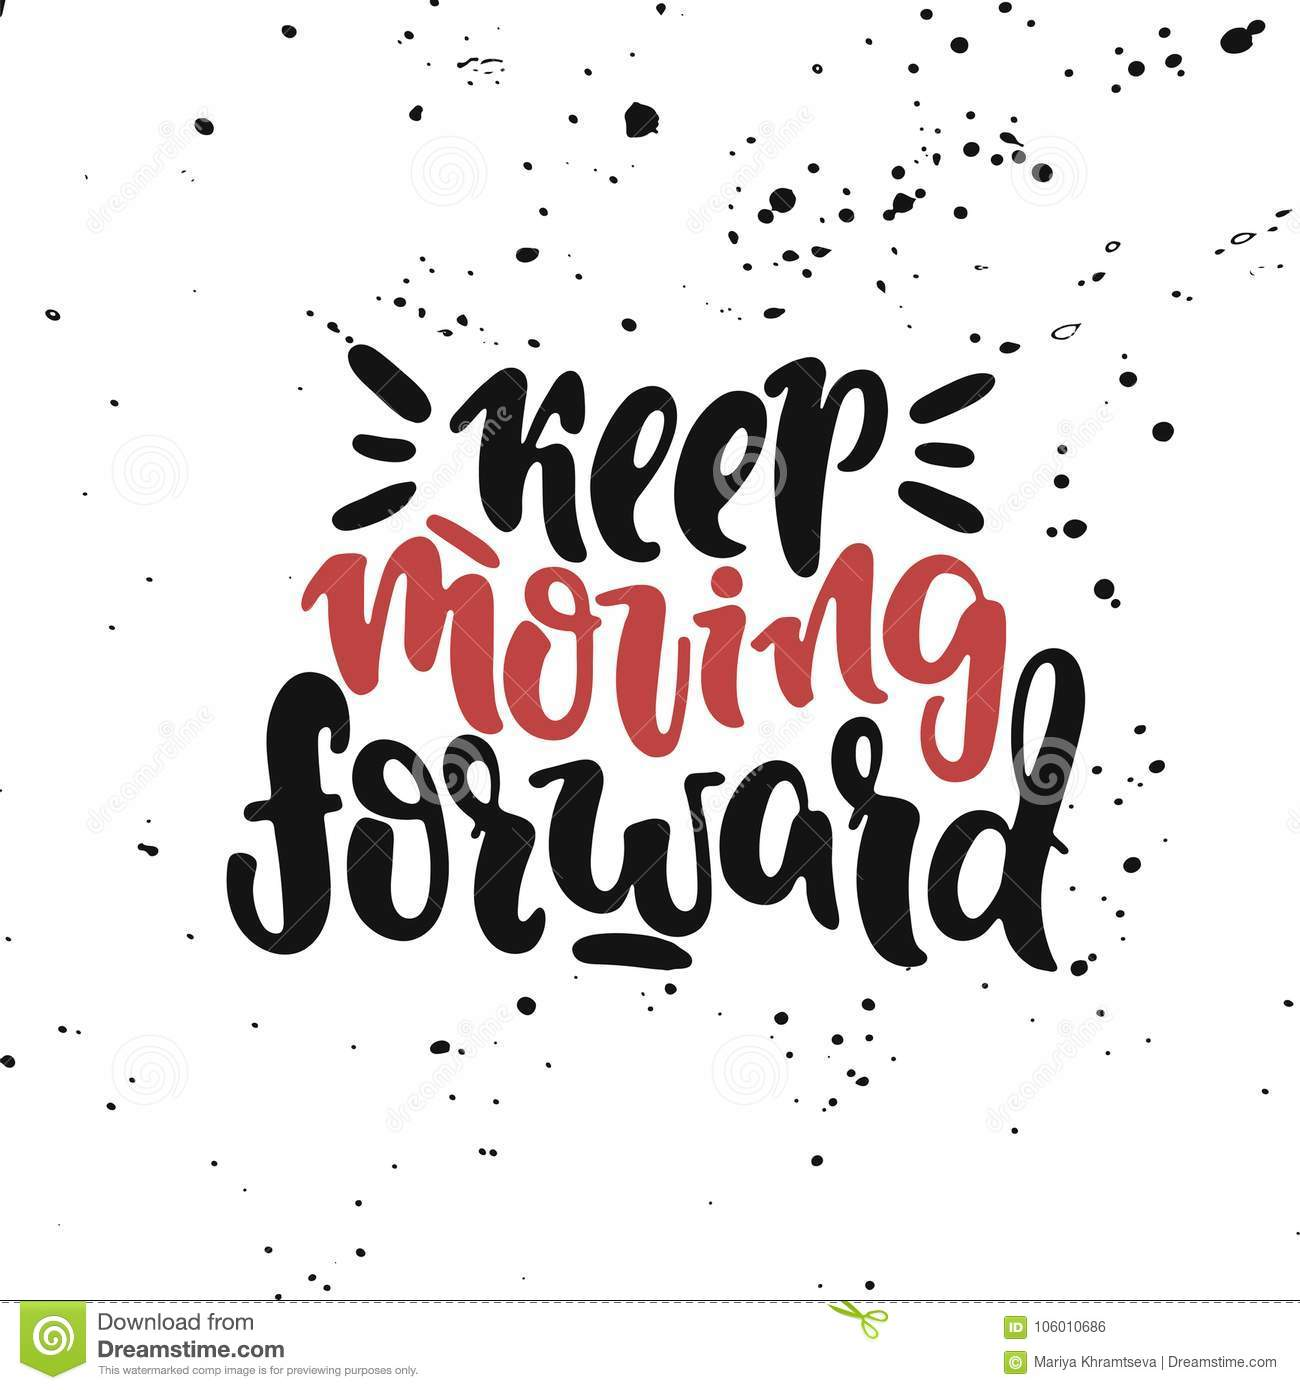 Keep Moving Forward Quote | Keep Moving Forward Stock Vector Illustration Of Life 106010686